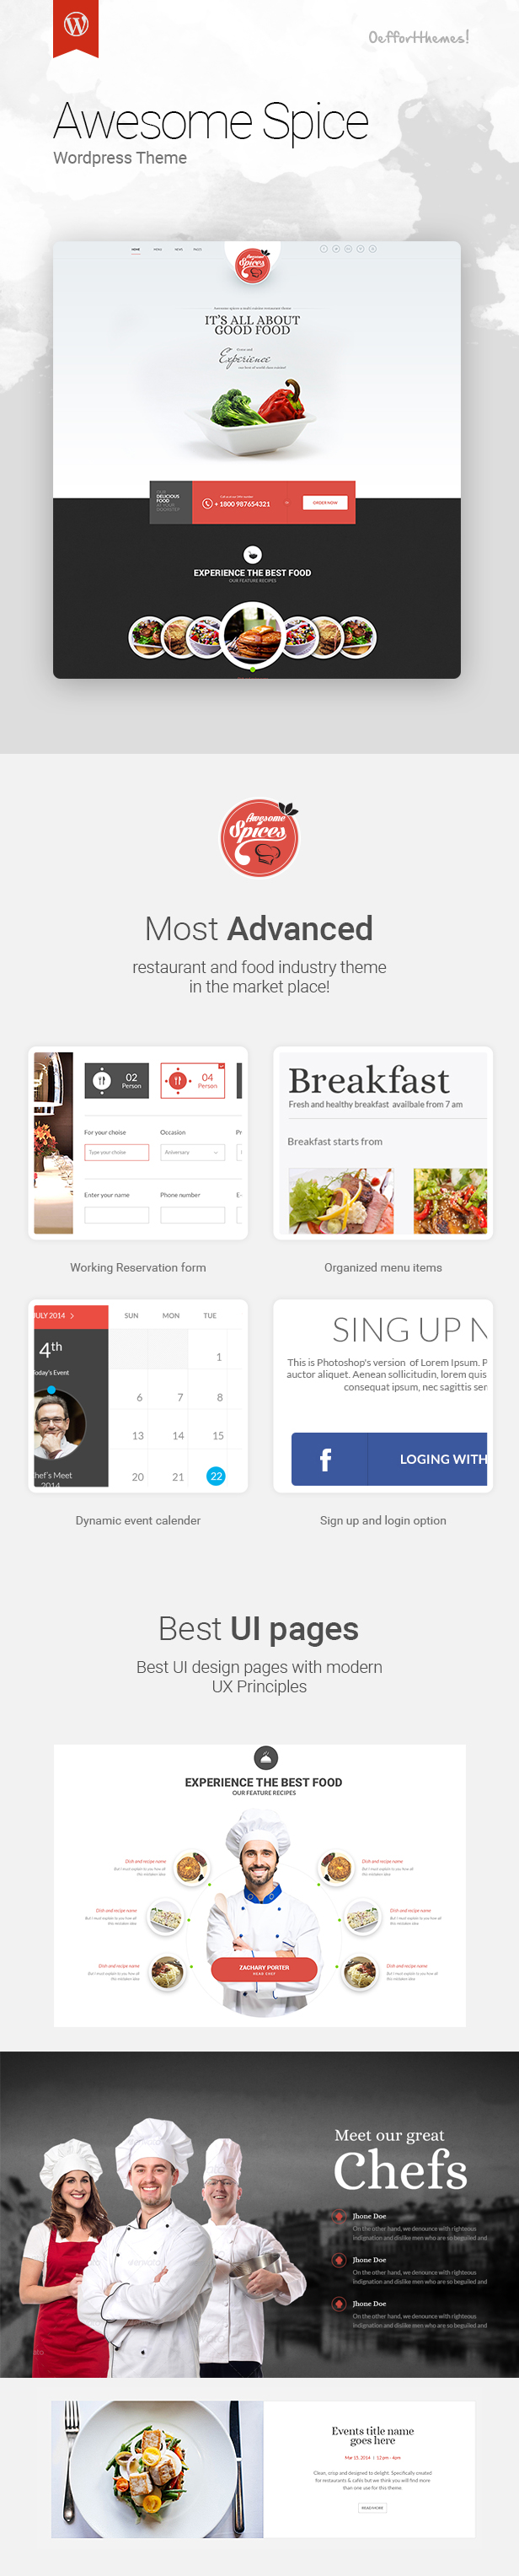 Awesome Spice - Restaurant / Cafe WordPress Theme - 6